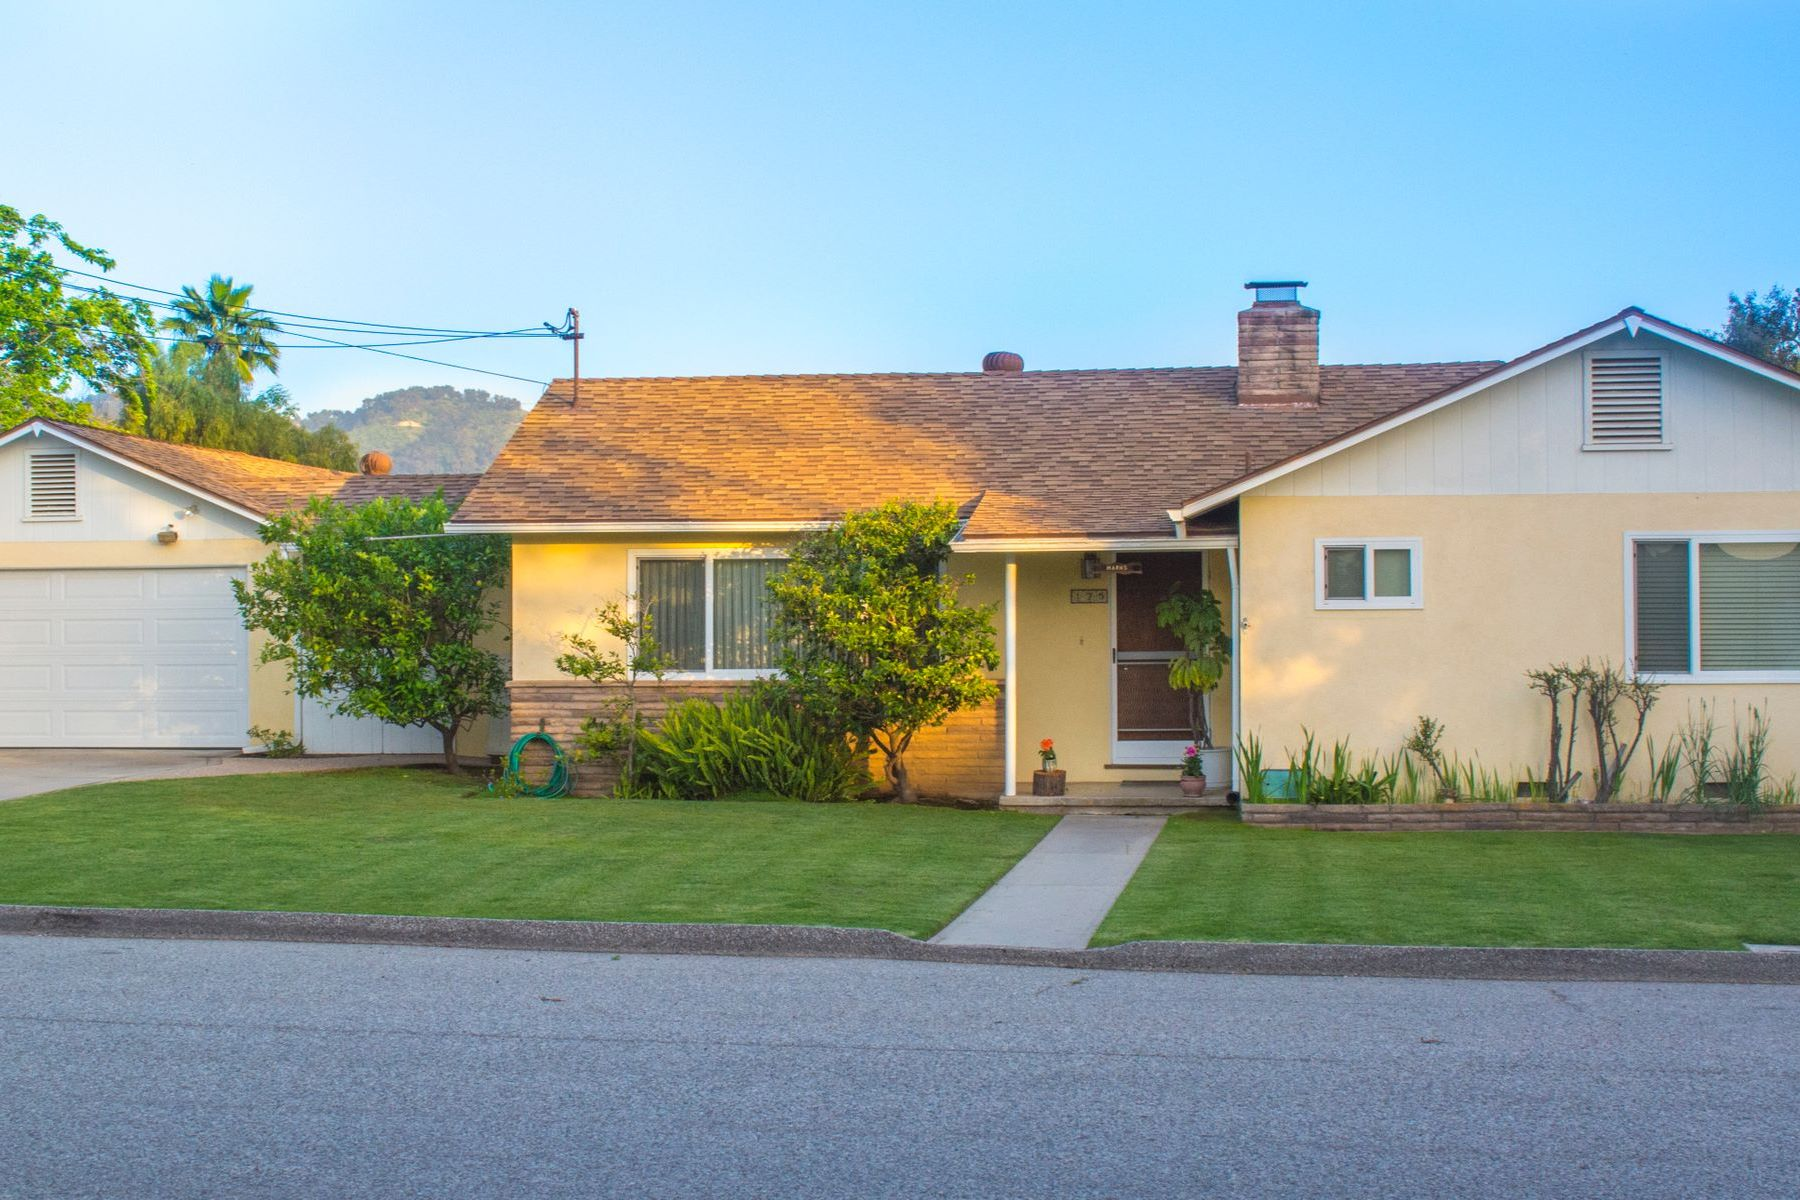 Single Family Homes for Sale at Ranch style home in Skyline Estates 175 Alto Drive Oak View, California 93022 United States